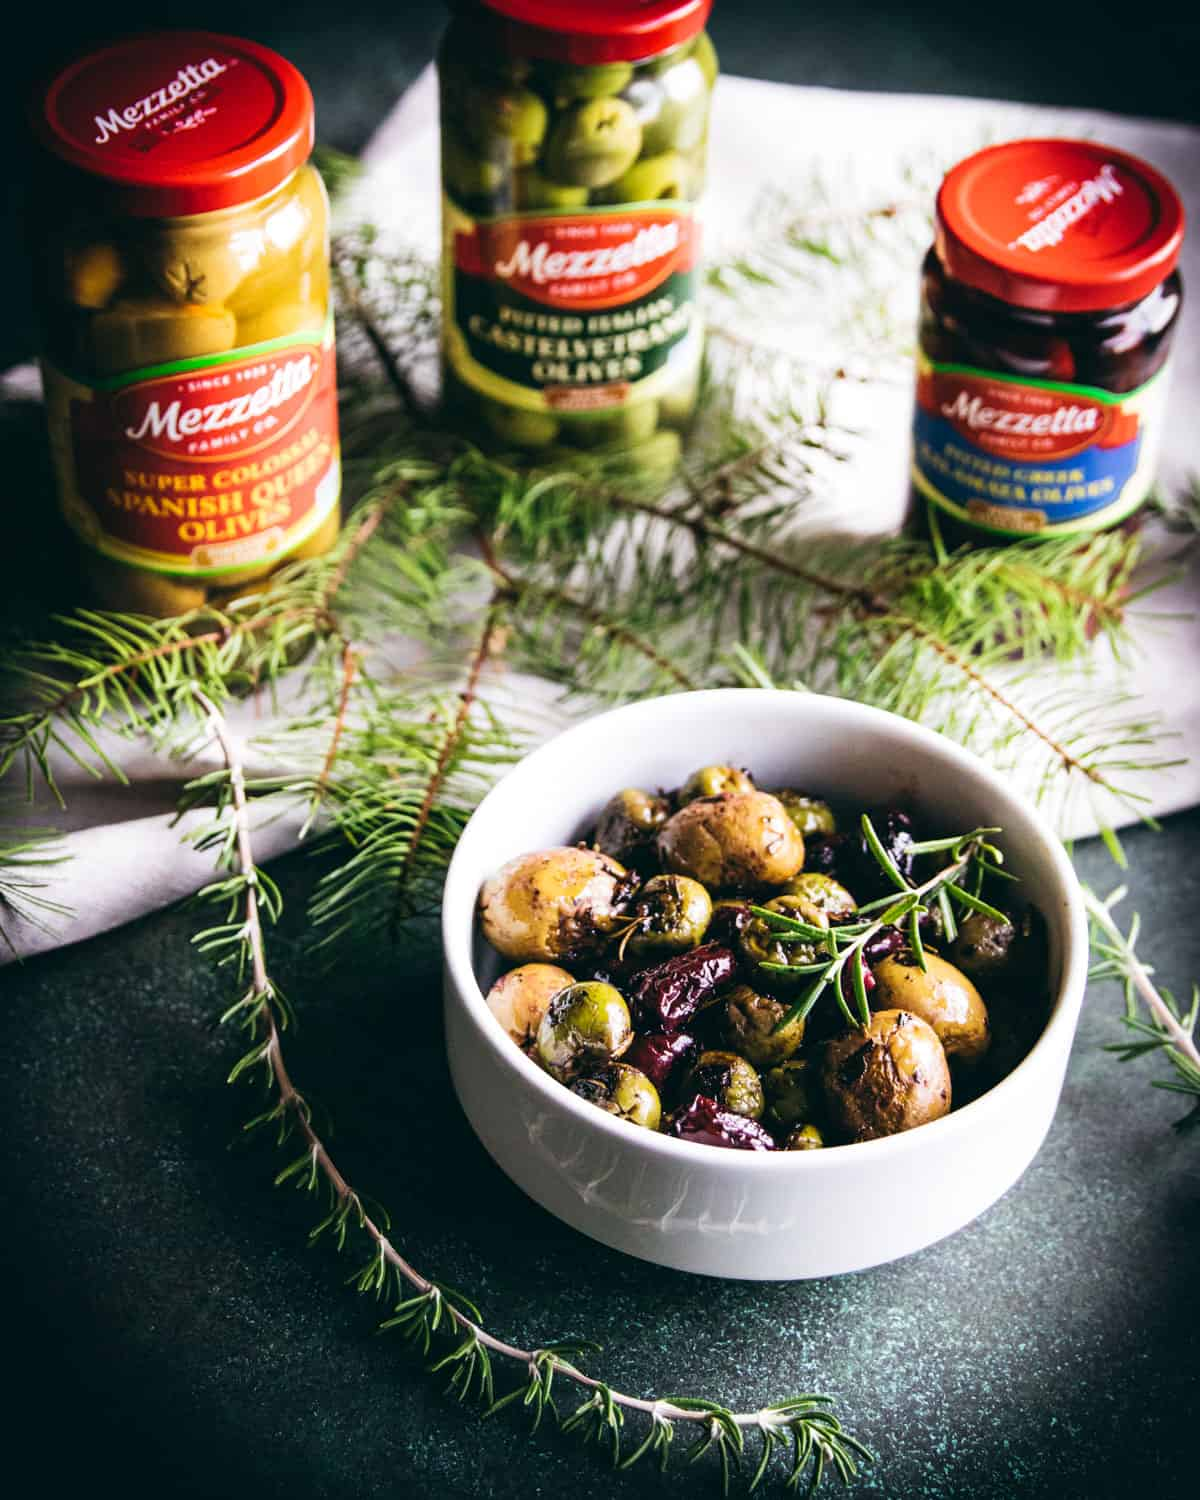 a bowl of roasted olives on a table with some jars of Mezzetta olives